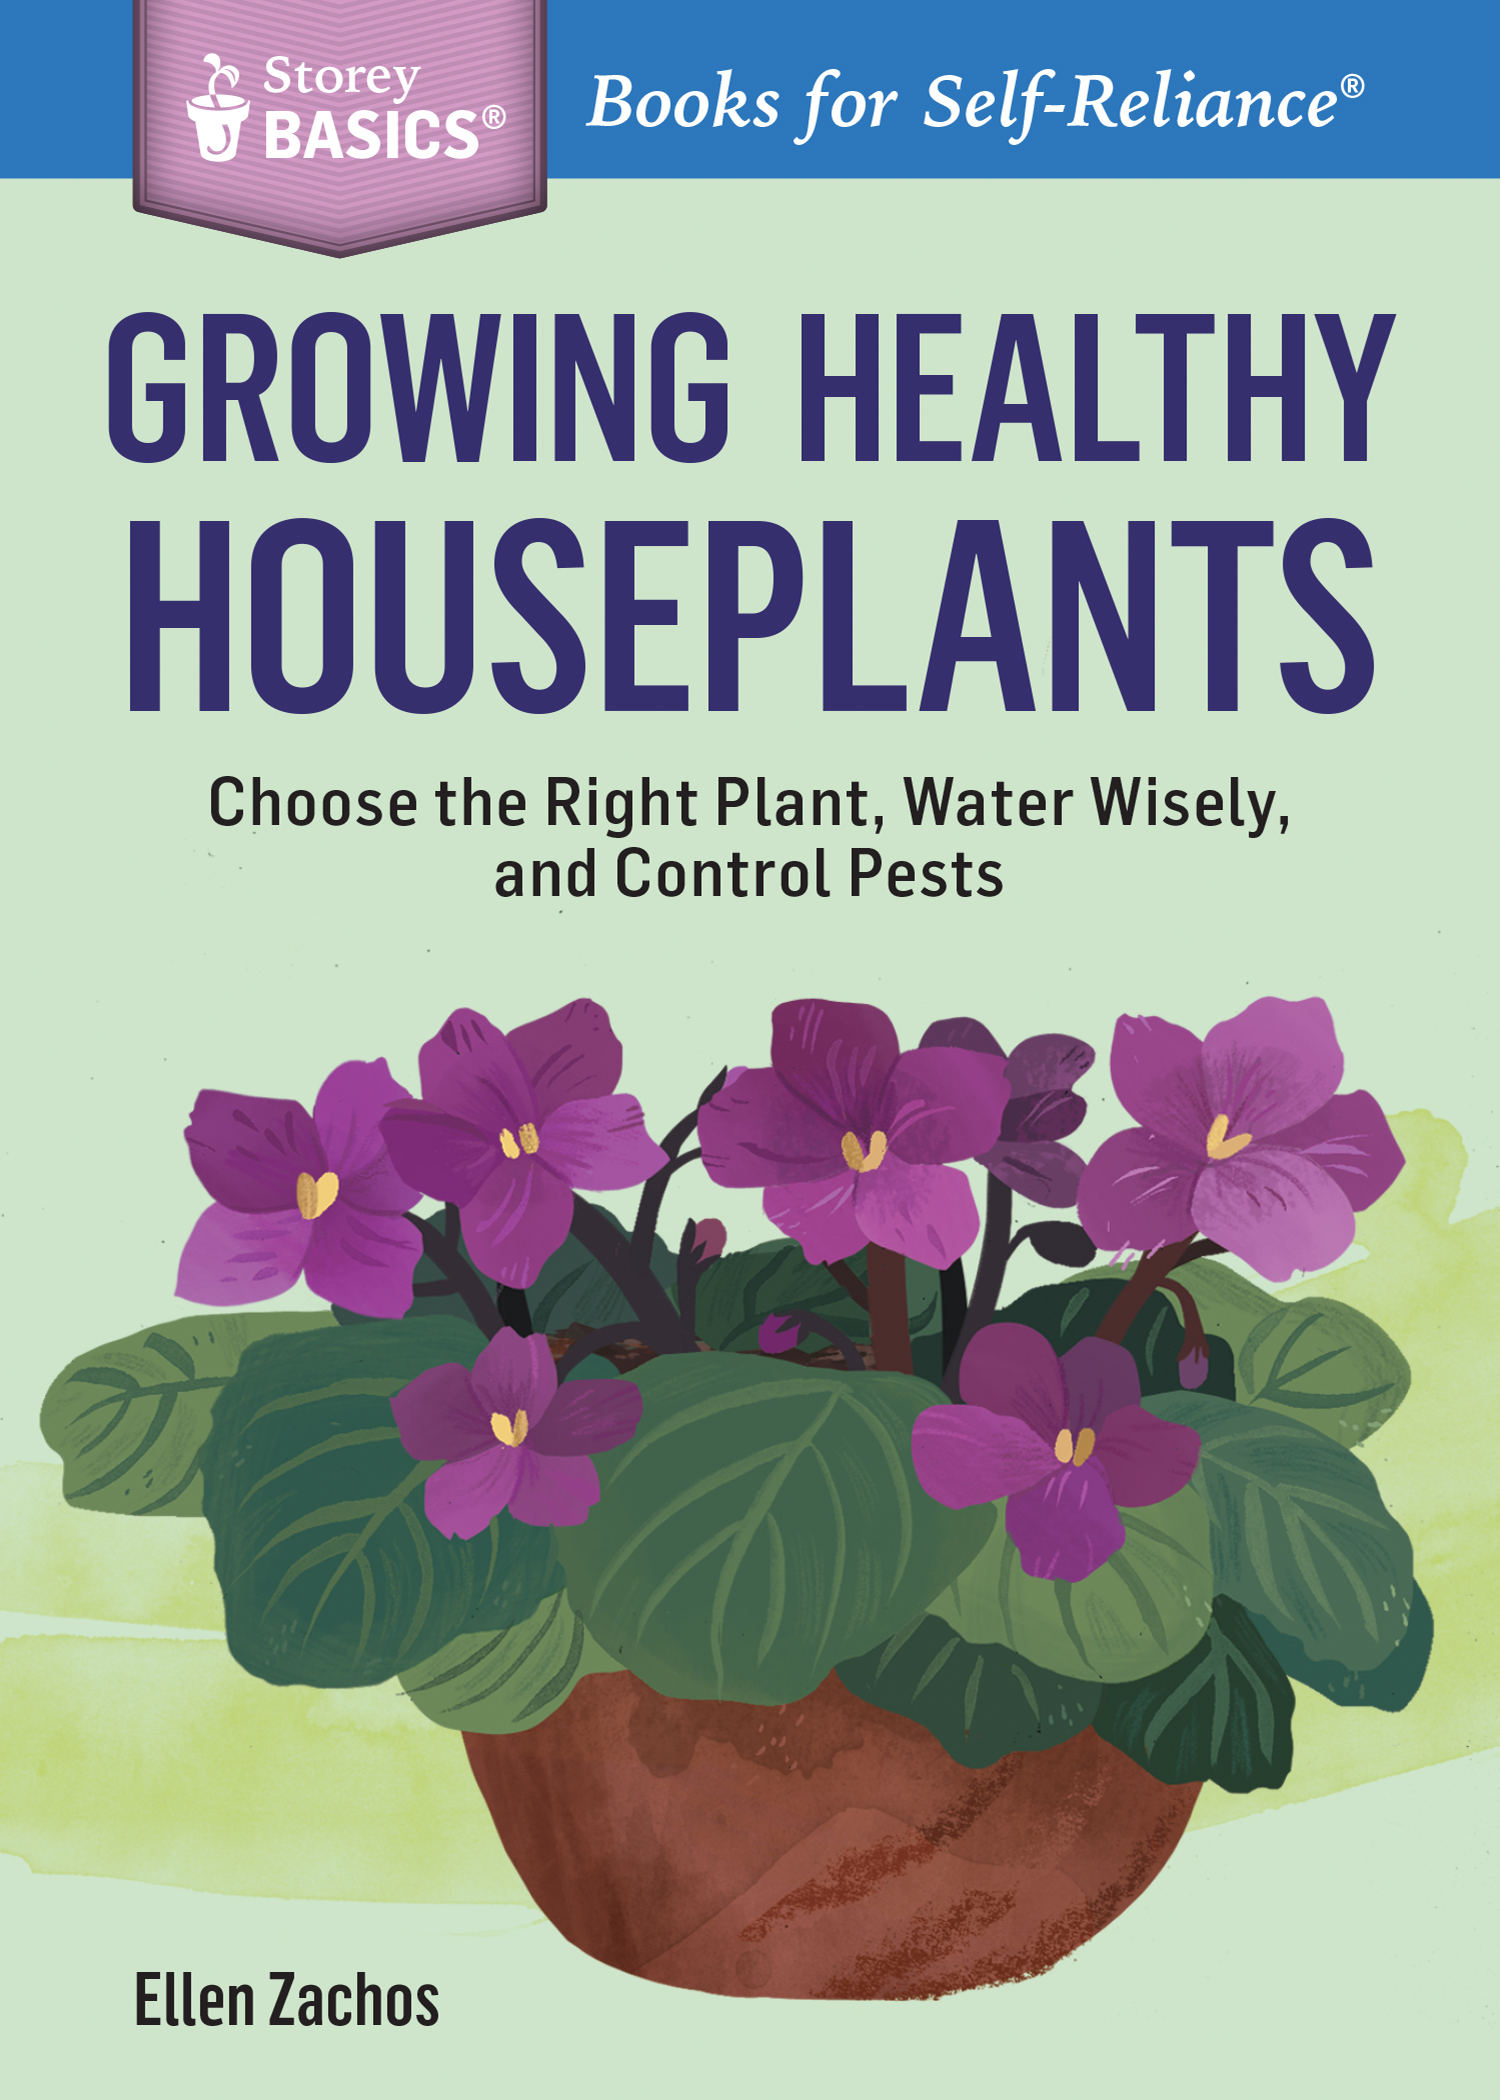 Growing Healthy Houseplants Choose the Right Plant, Water Wisely, and Control Pests. A Storey BASICS® Title - Ellen Zachos